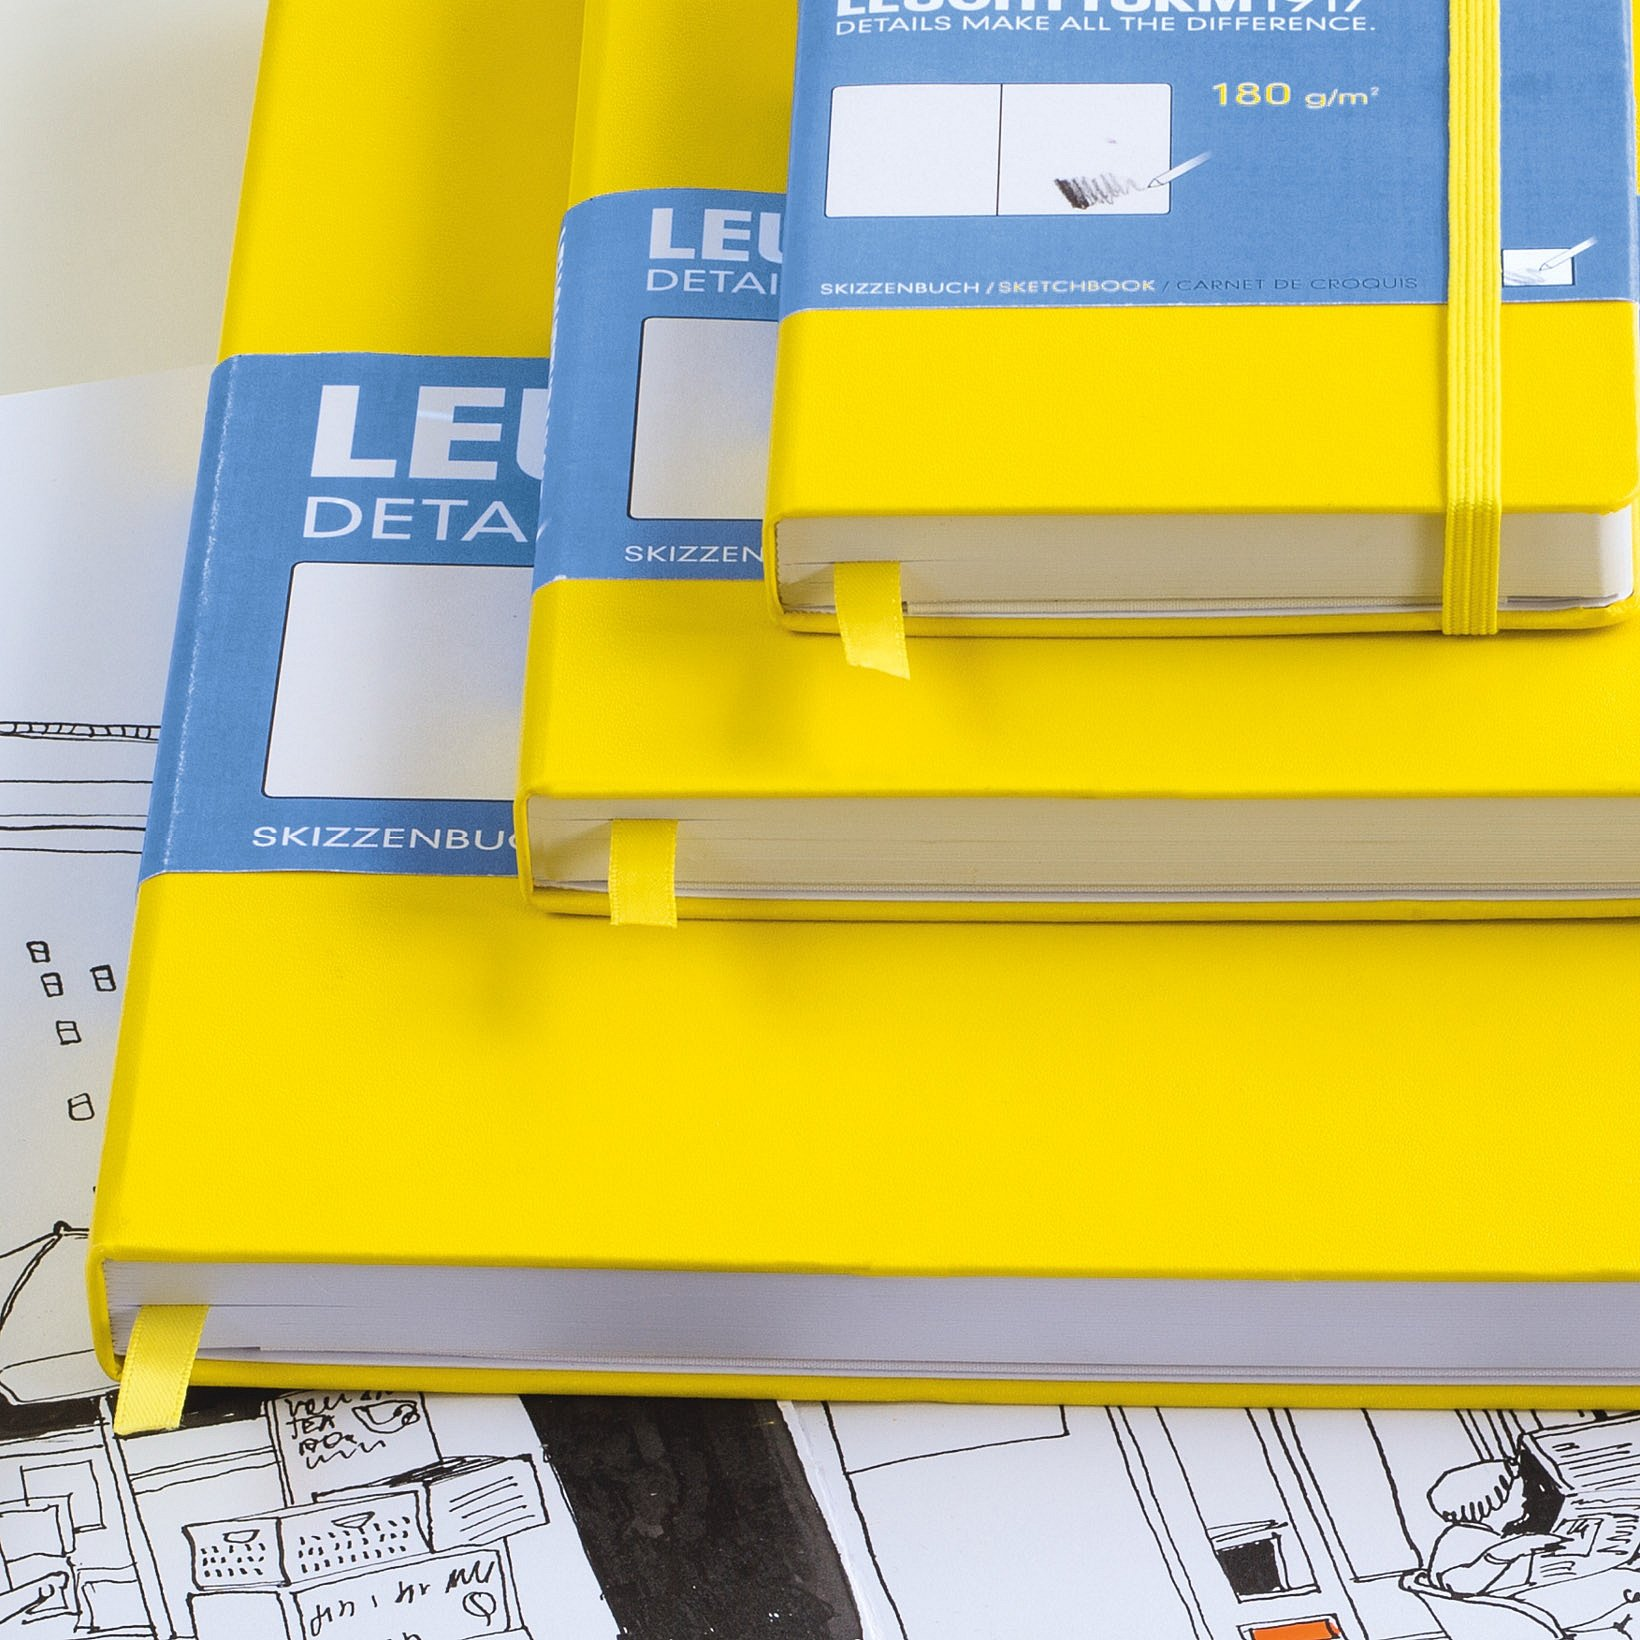 Leuchtturm1917 A4+ Master Hardcover Sketchbook, 8.85 X 12.5 inches, 96 Pages of 180g Brilliant White Plain Paper, Orange (345004) by LEUCHTTURM1917 (Image #5)